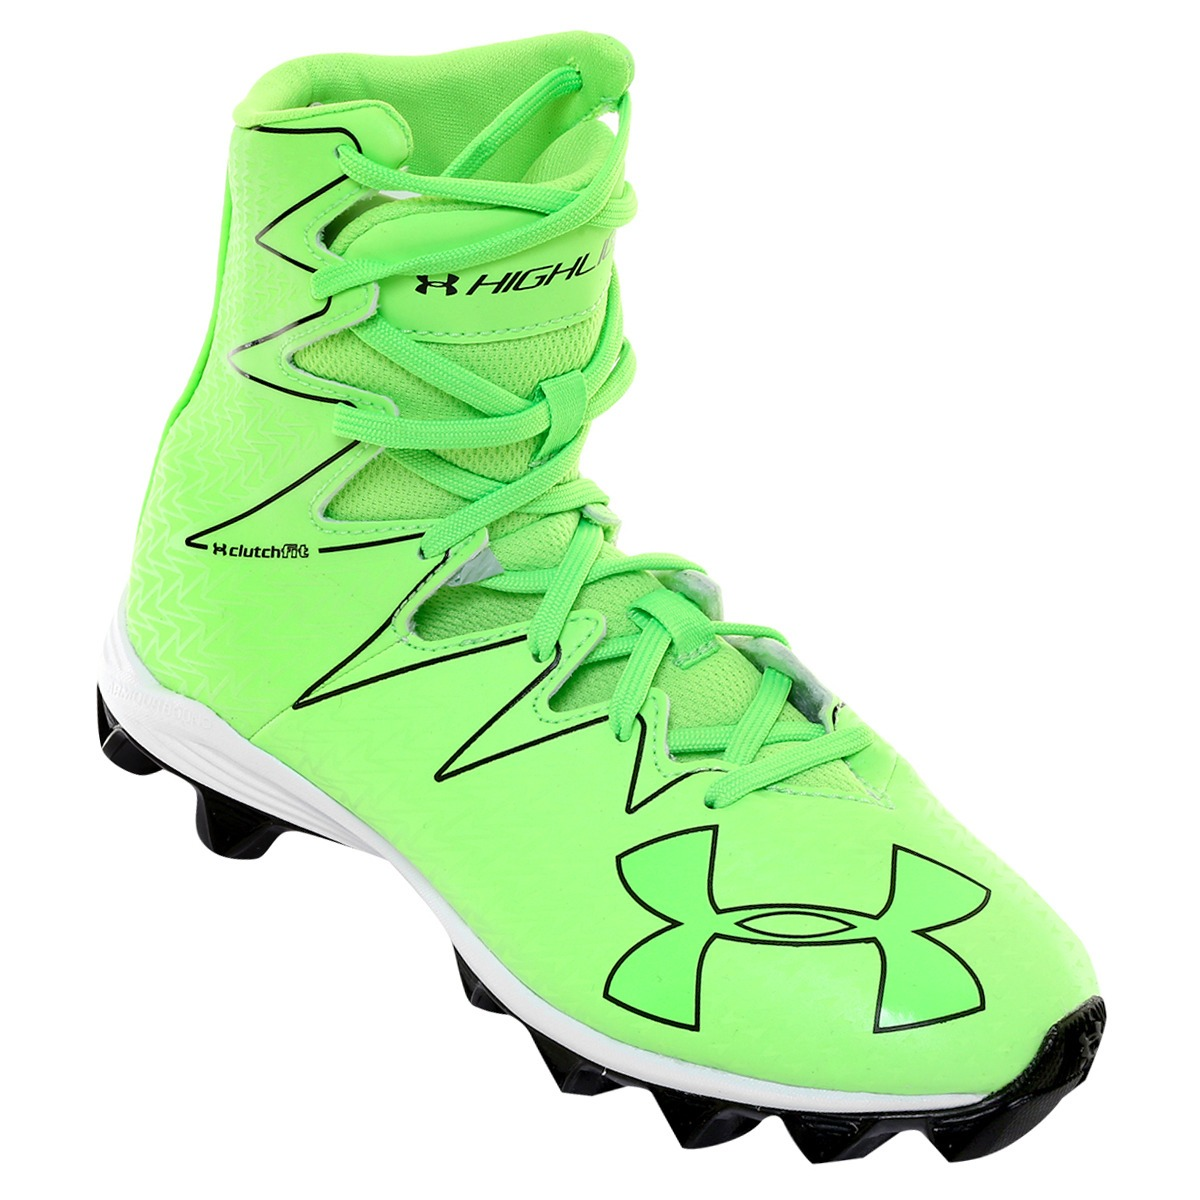 56f335120bf0a tenis de futbol americano infantil under armour highlight rm. Cargando zoom.